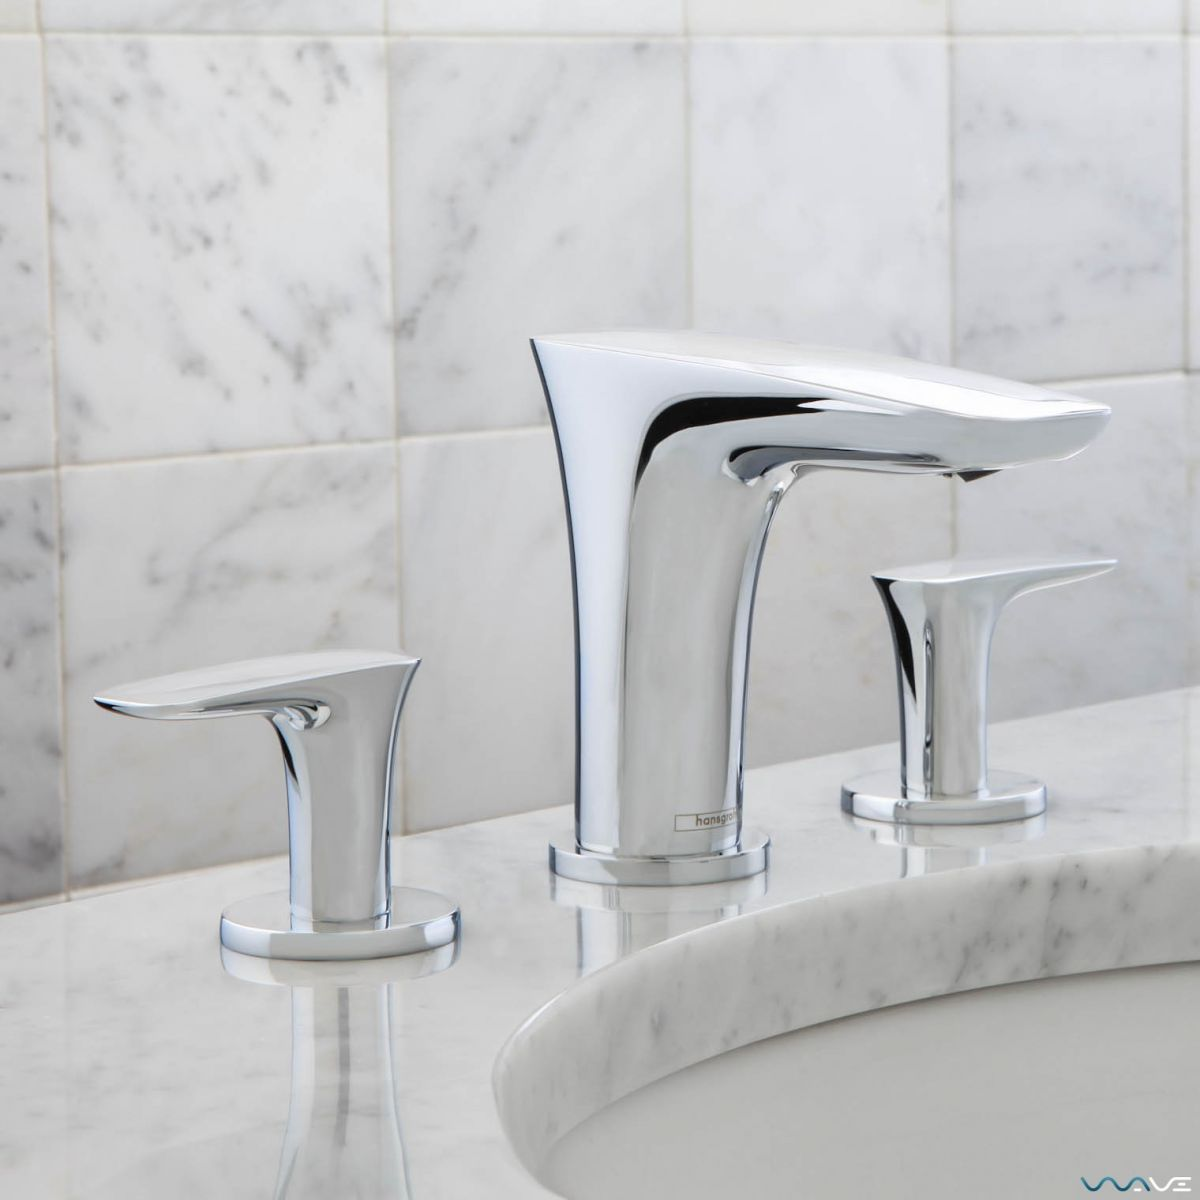 Hansgrohe puravida 3 hole basin mixer tap uk bathrooms for Hansgrohe puravida